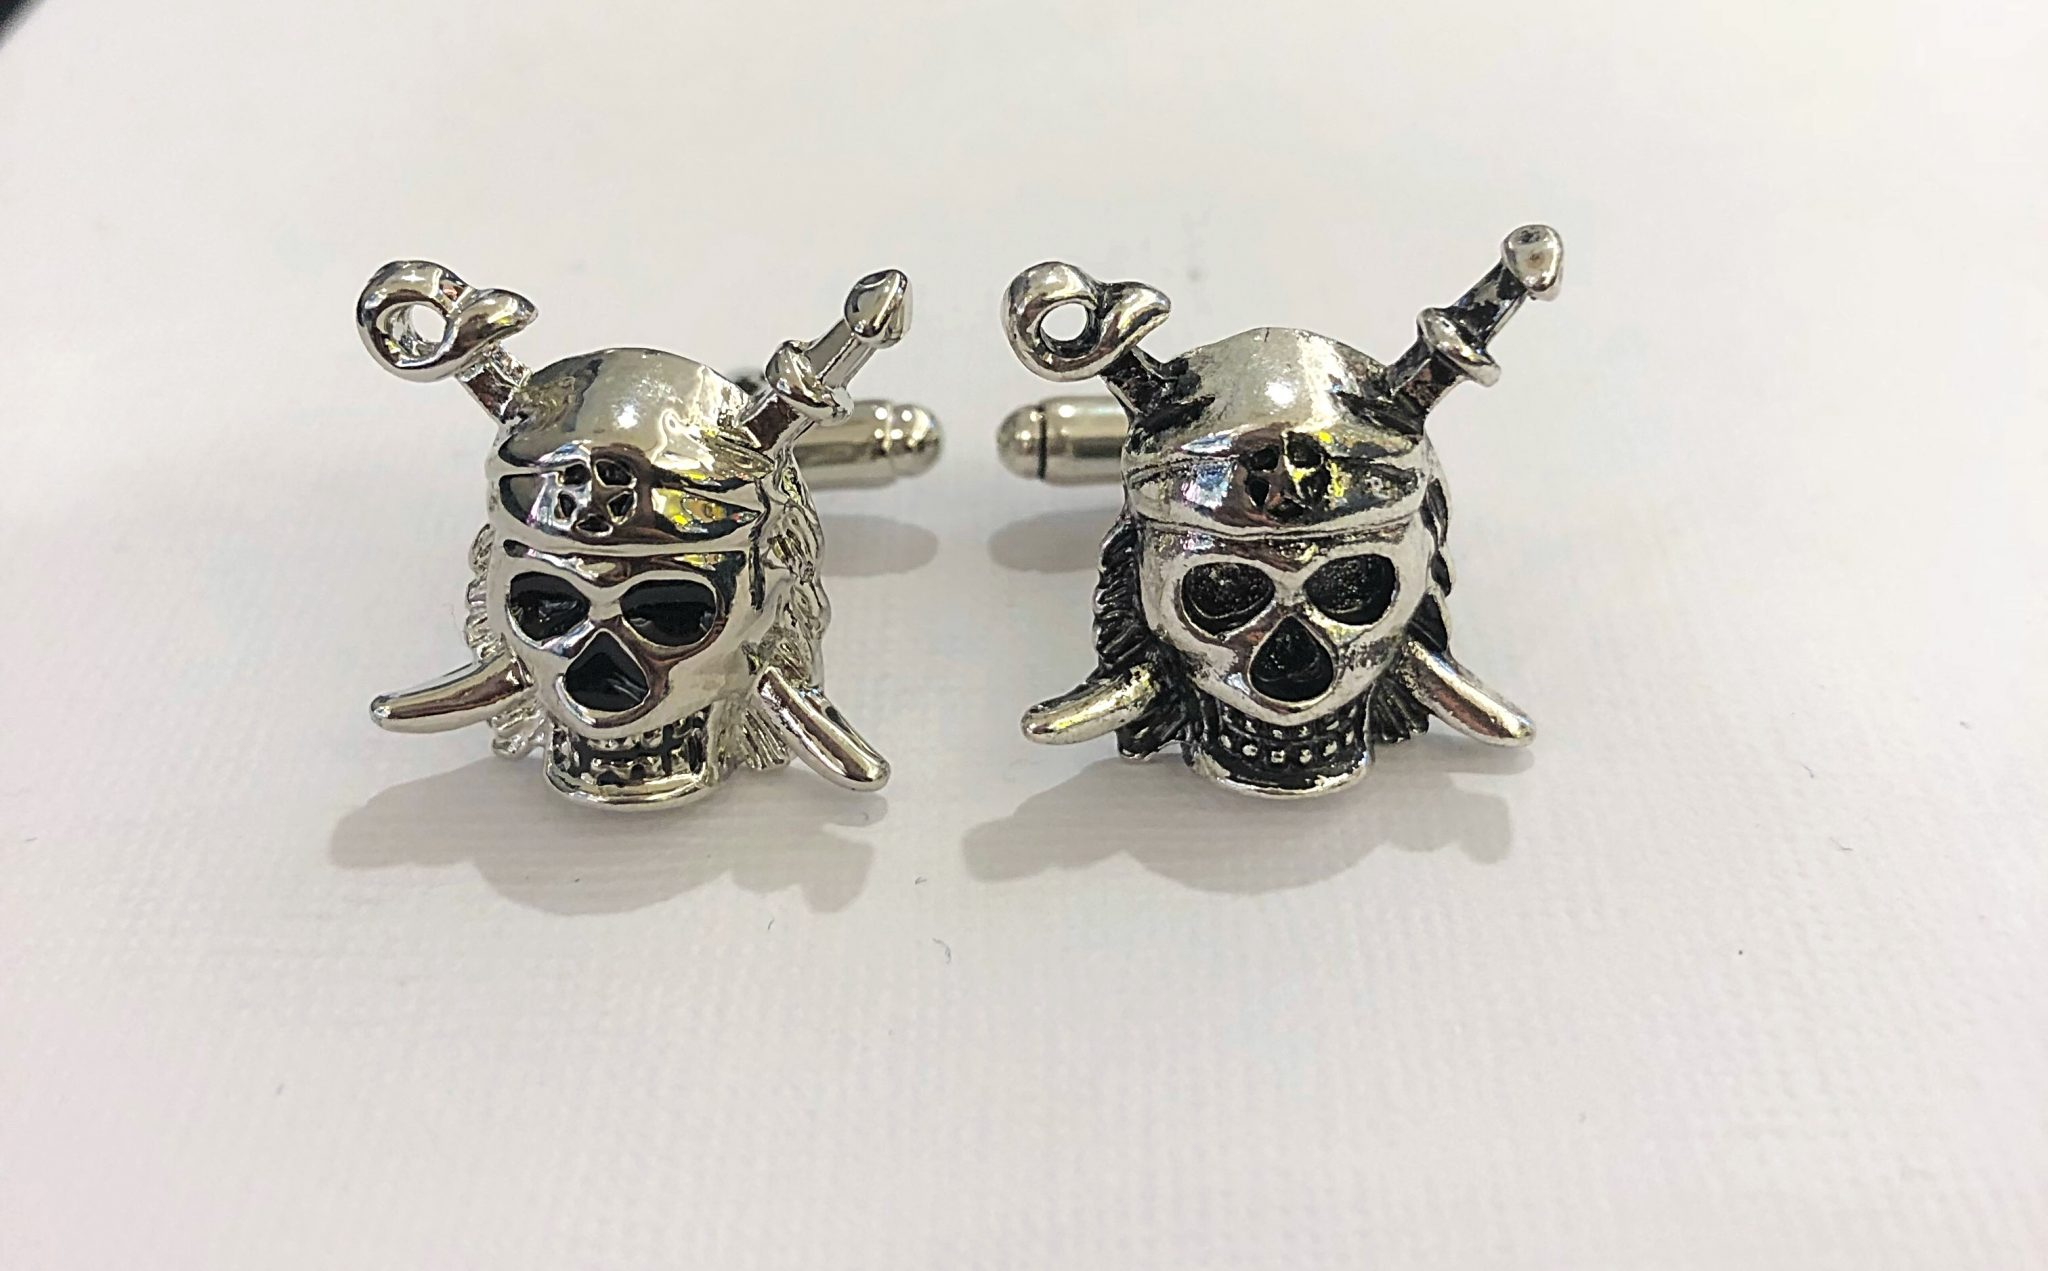 Jolly Roger Cufflinks with Swords